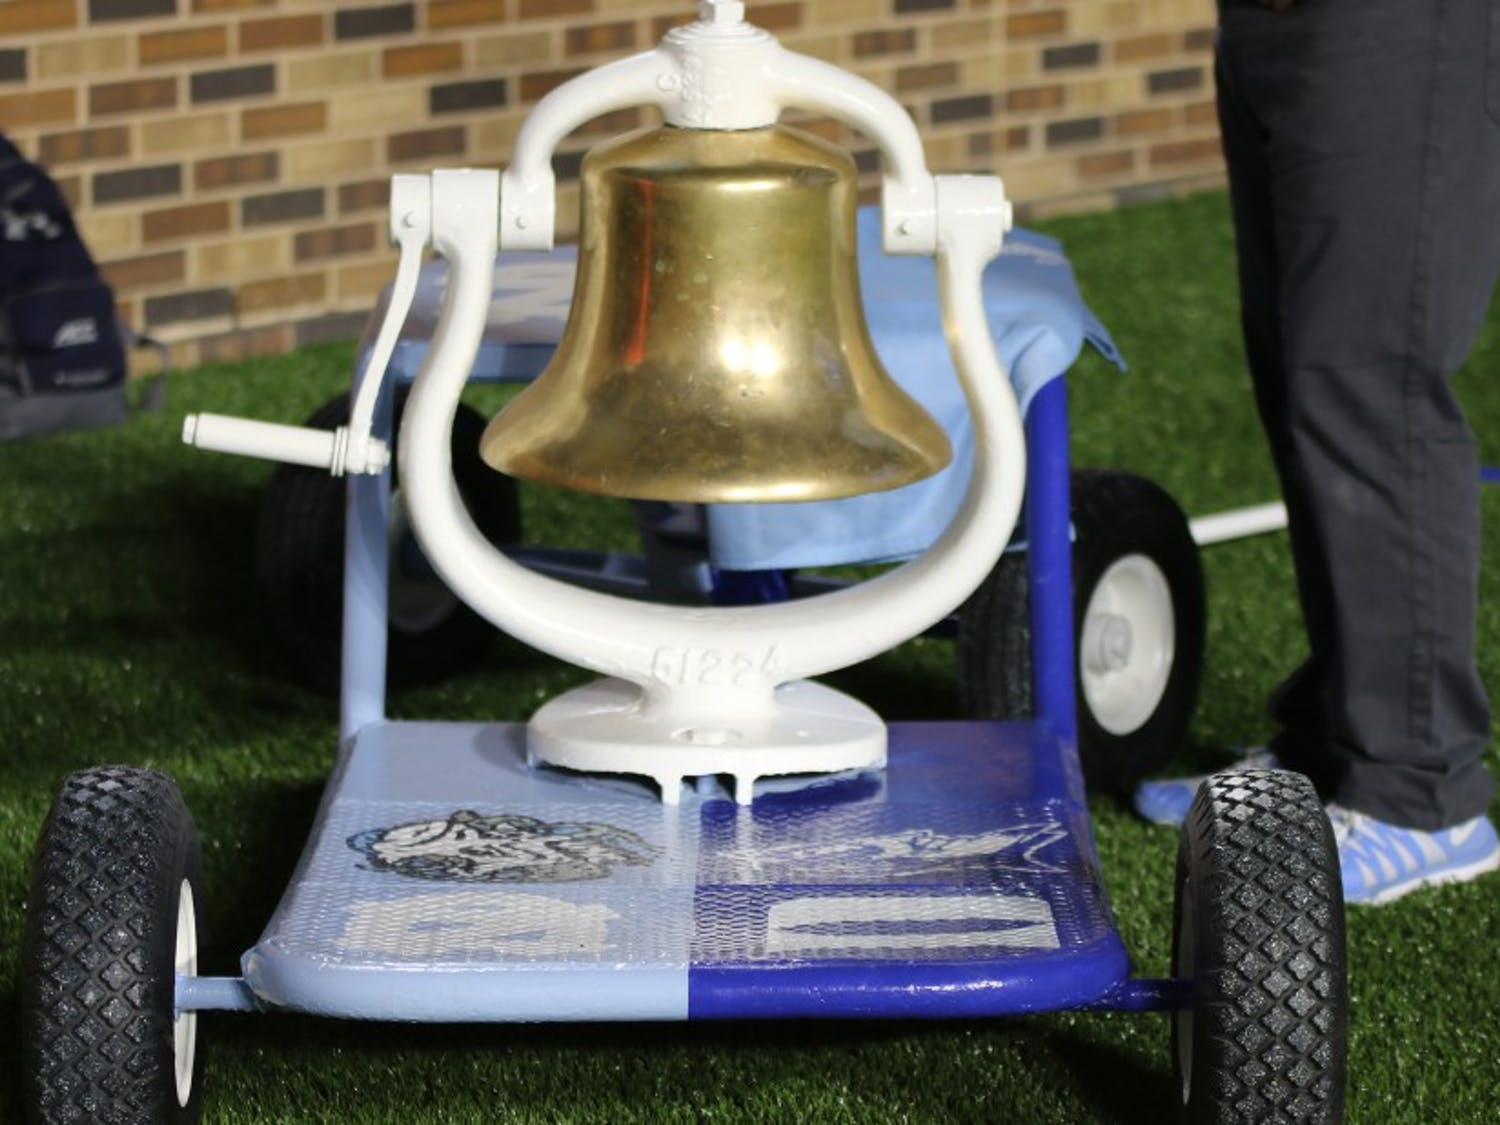 The Victory Bell's platform was split in half before Thursday's game, but North Carolina planned to spray paint it entirely North Carolina blue if the Tar Heels had emerged victorious.